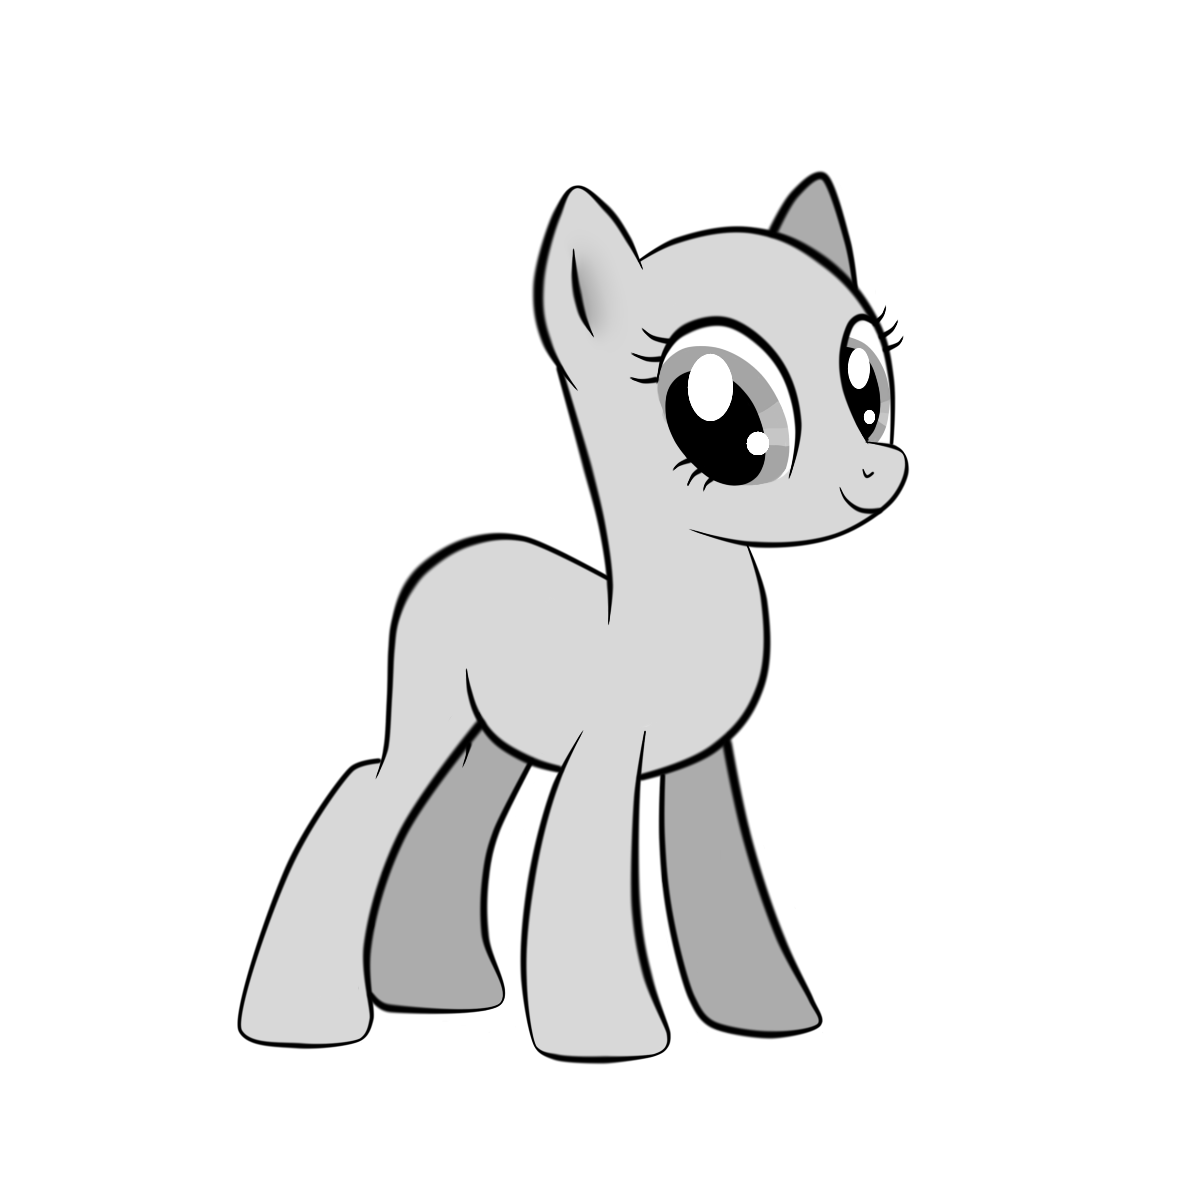 Drawn my little pony base earth Female pony by base Earth